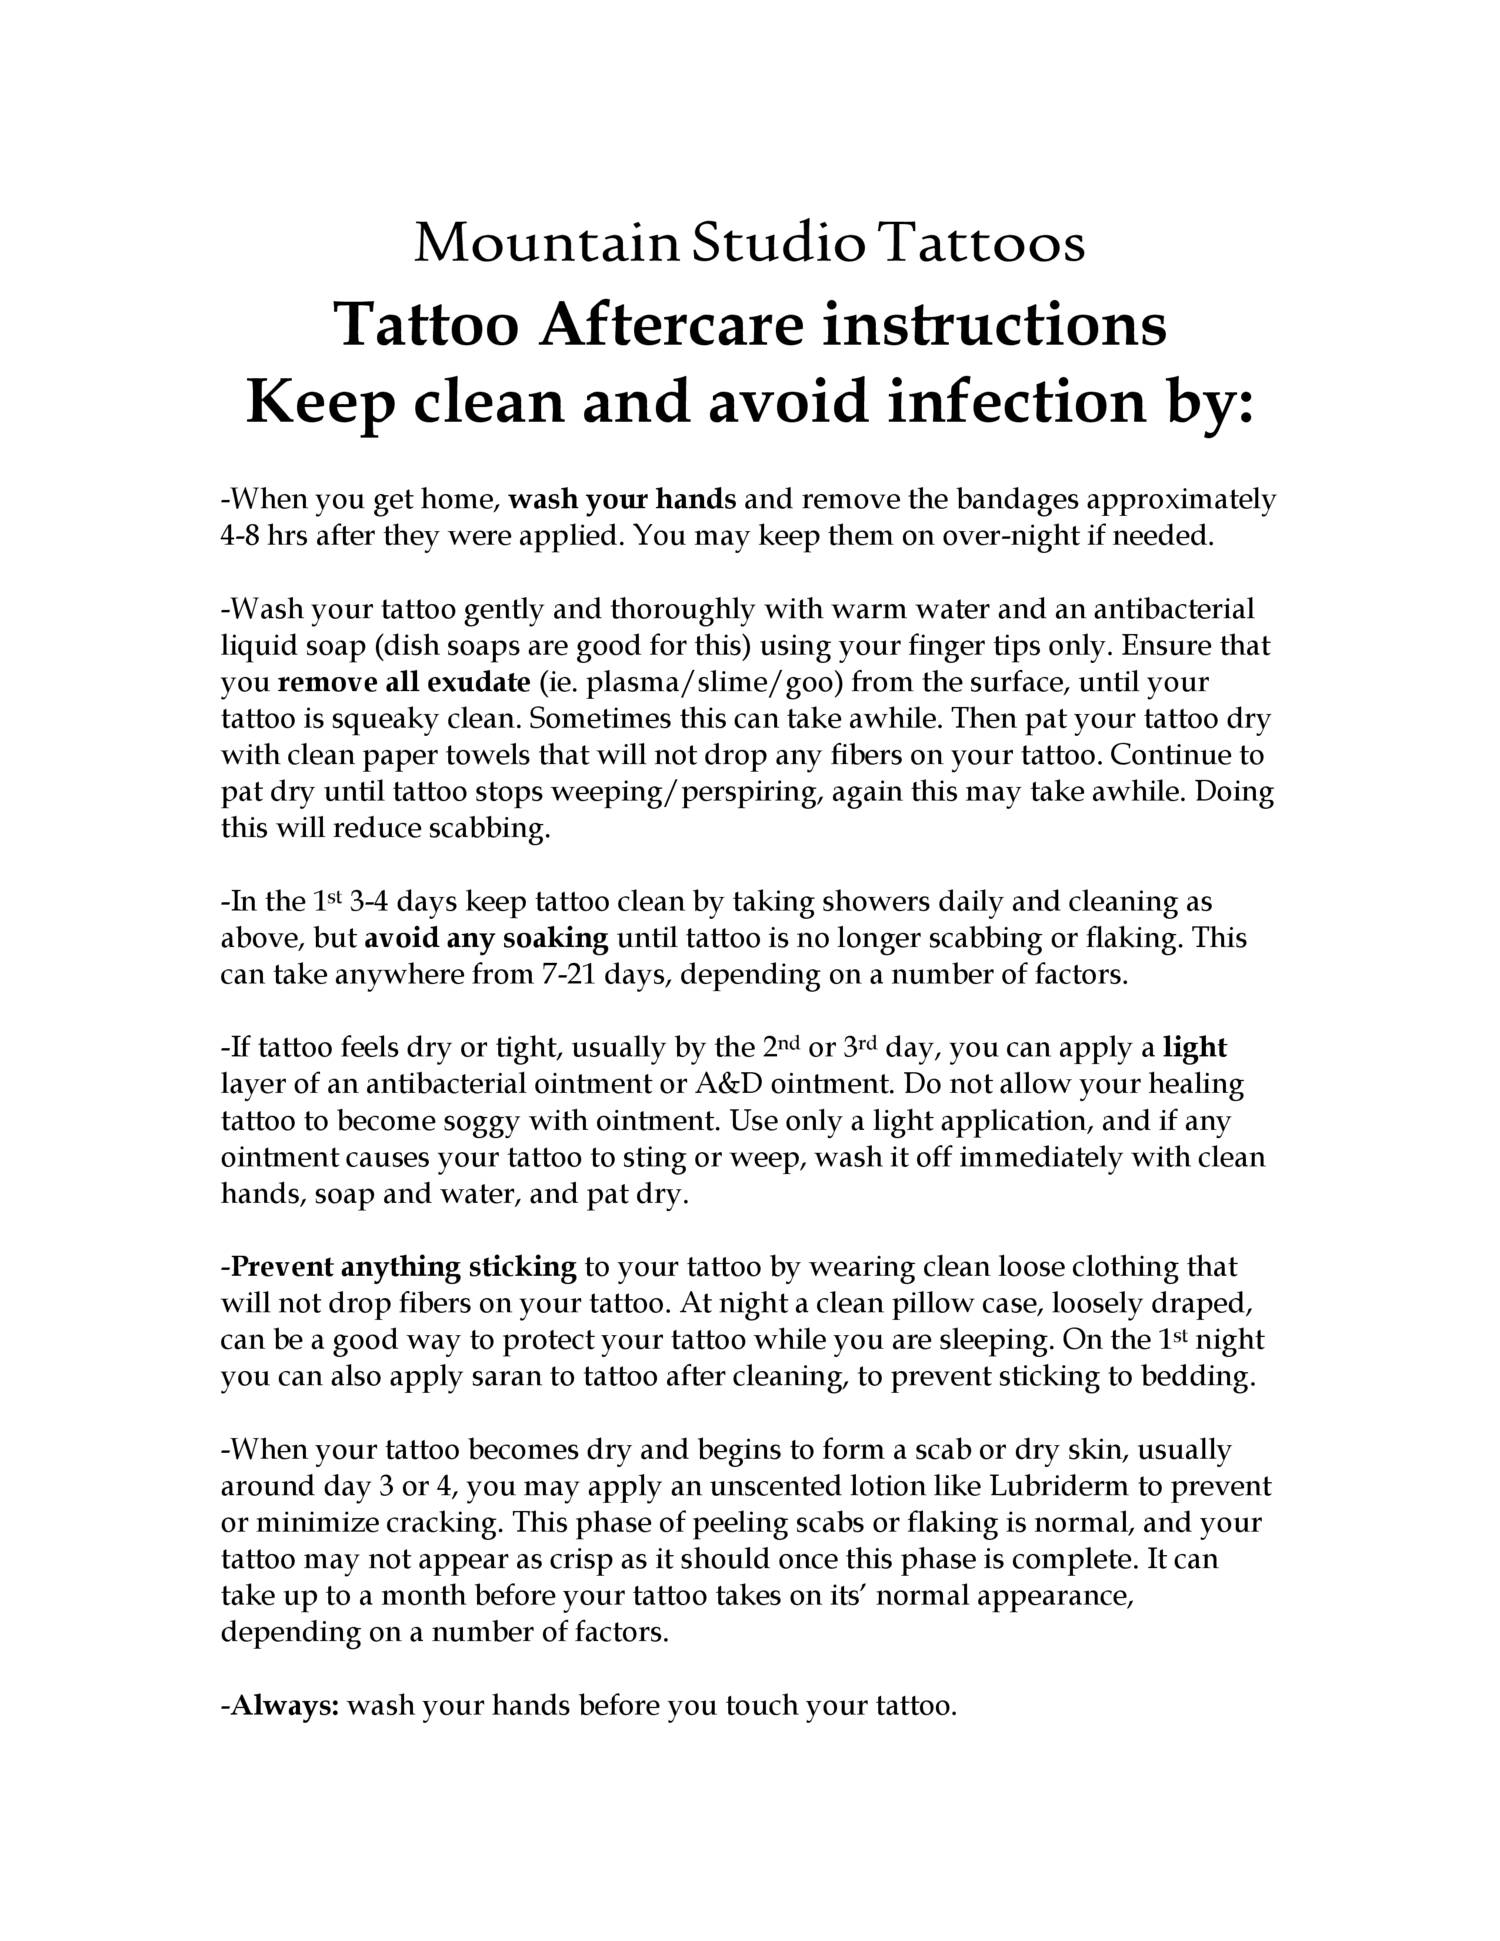 Mountain Studio Tattoos, aftercare.doc   DocDroid